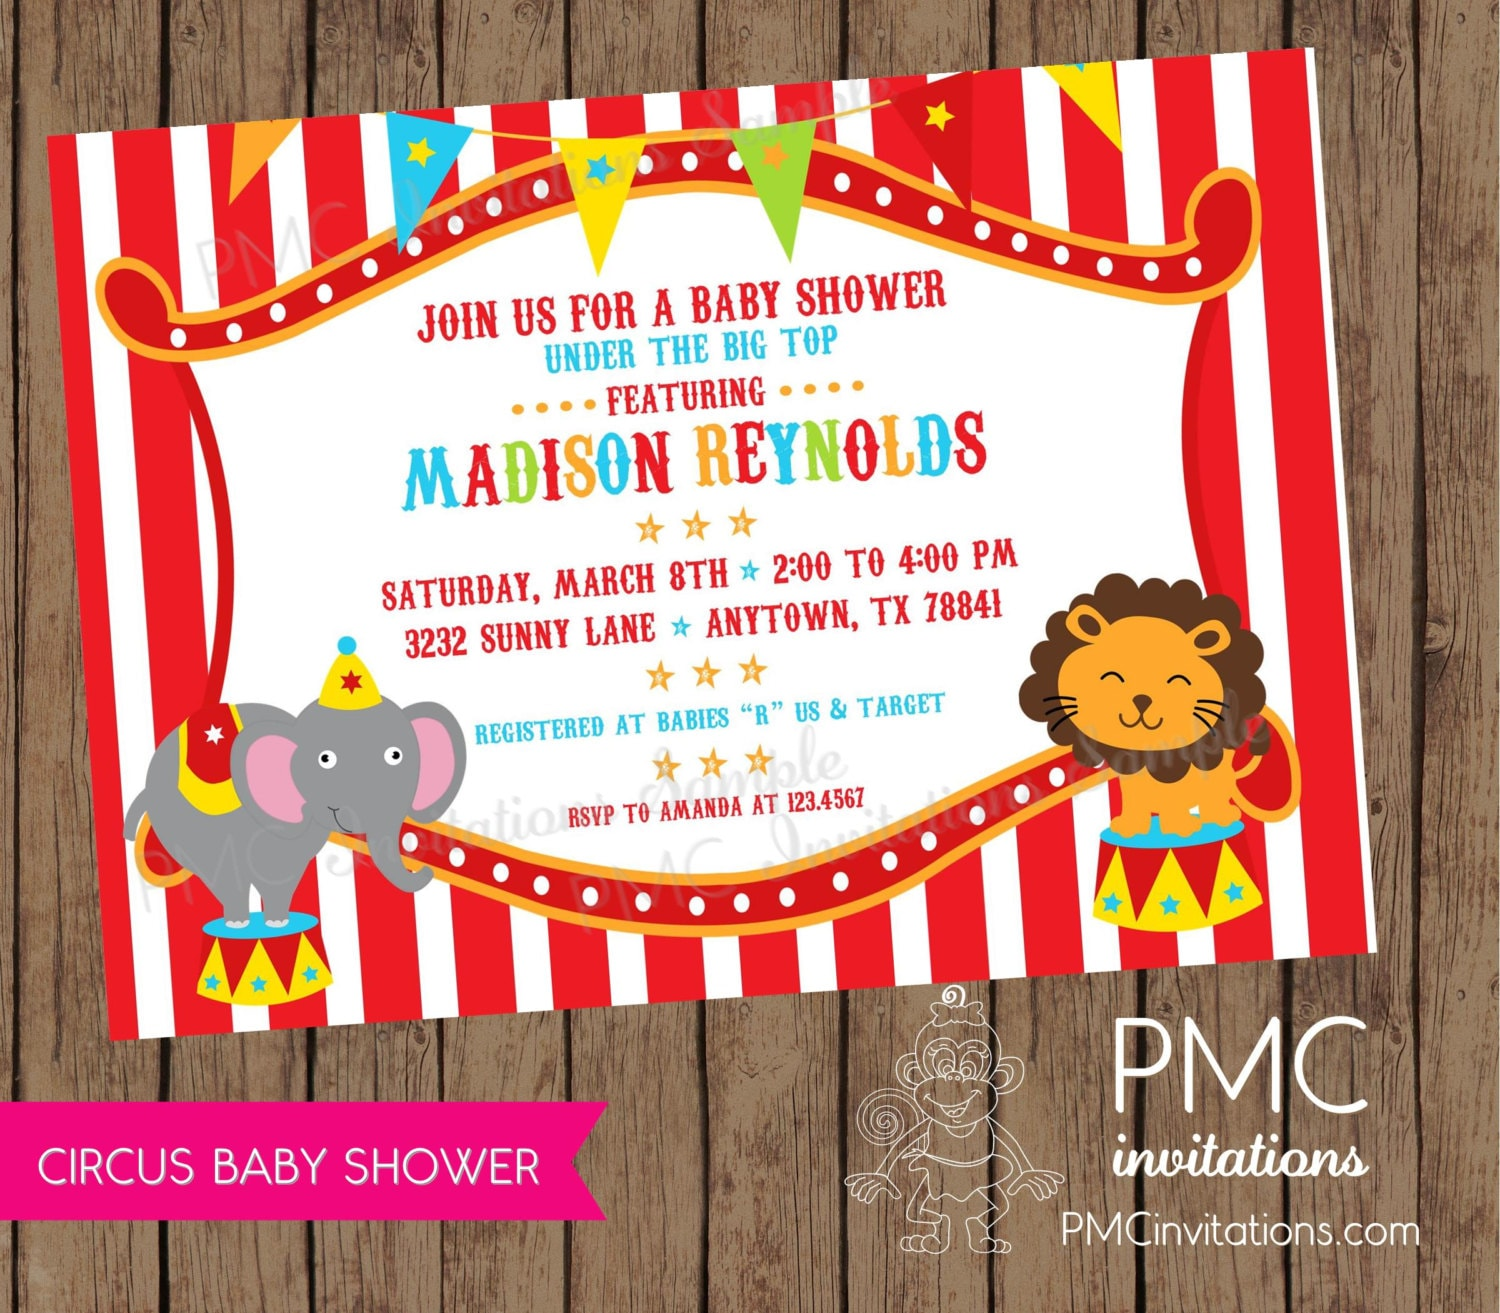 Baby Shower Invitations 1.00 each with envelope